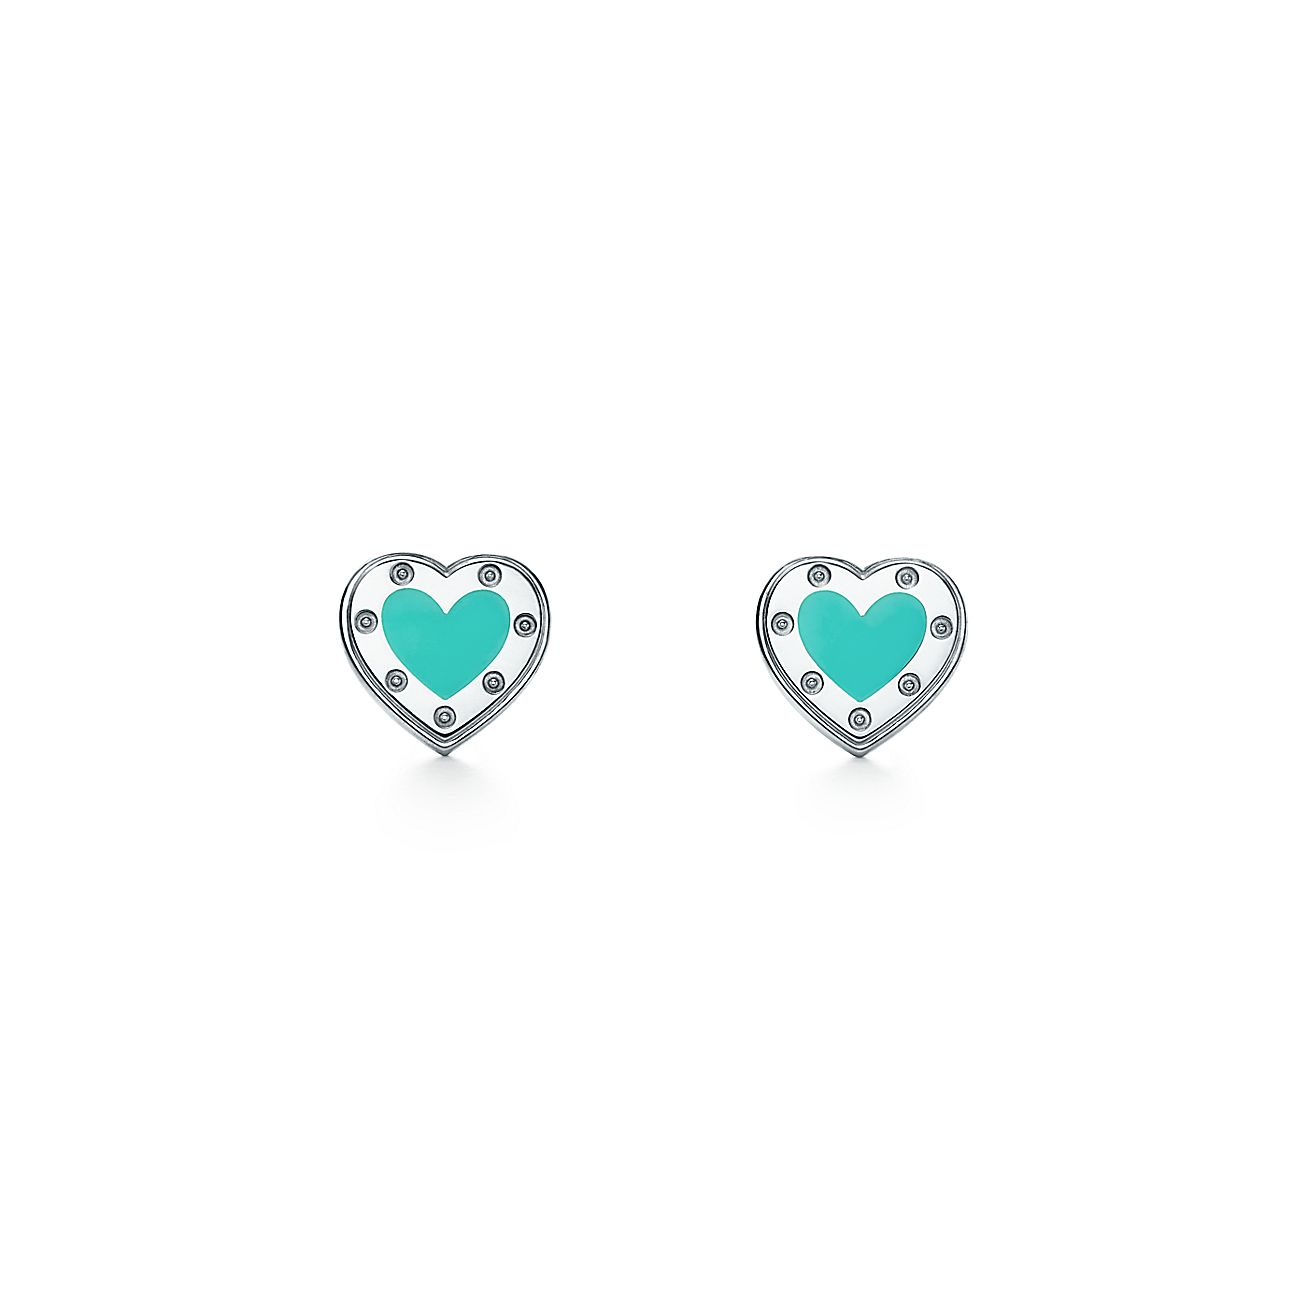 Return To Tiffany Love Heart Earrings In Silver With Enamel Finish Mini Co